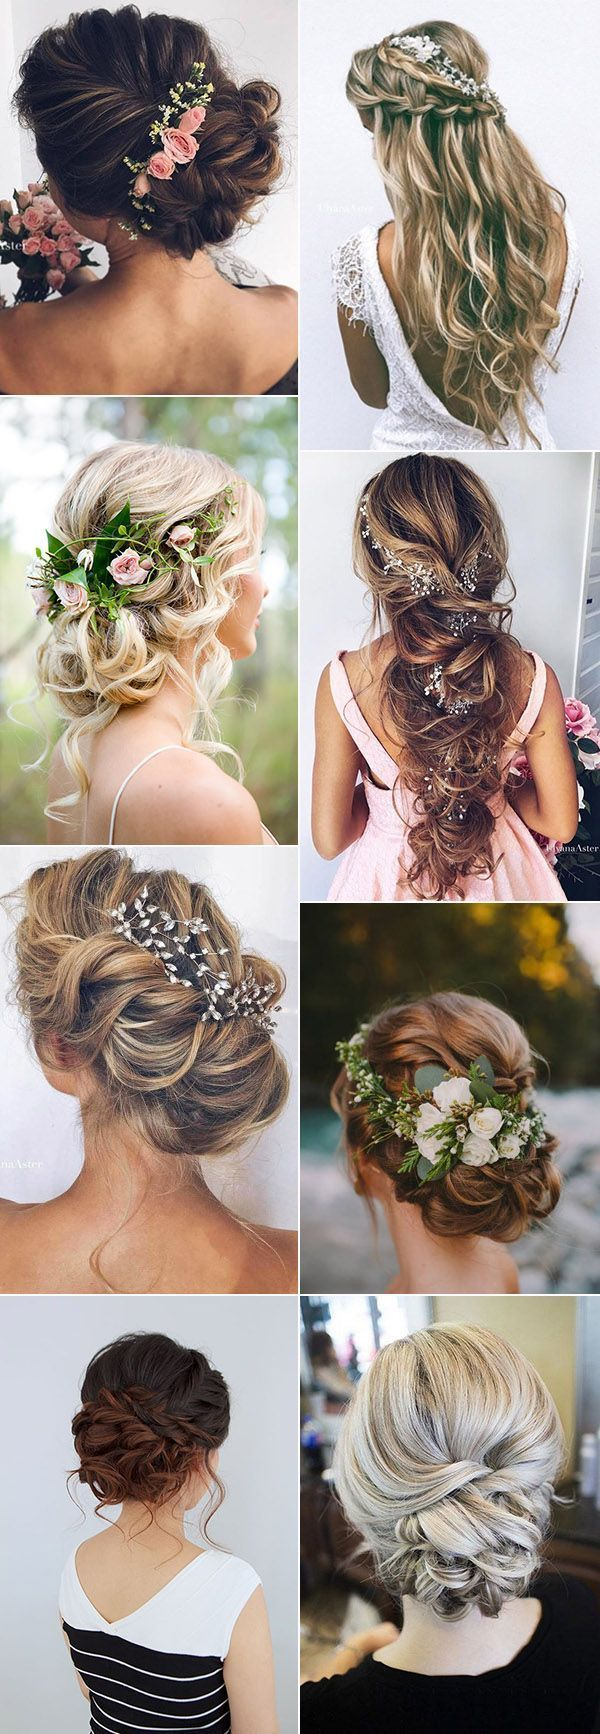 best wed images on pinterest hairstyle ideas wedding ideas and